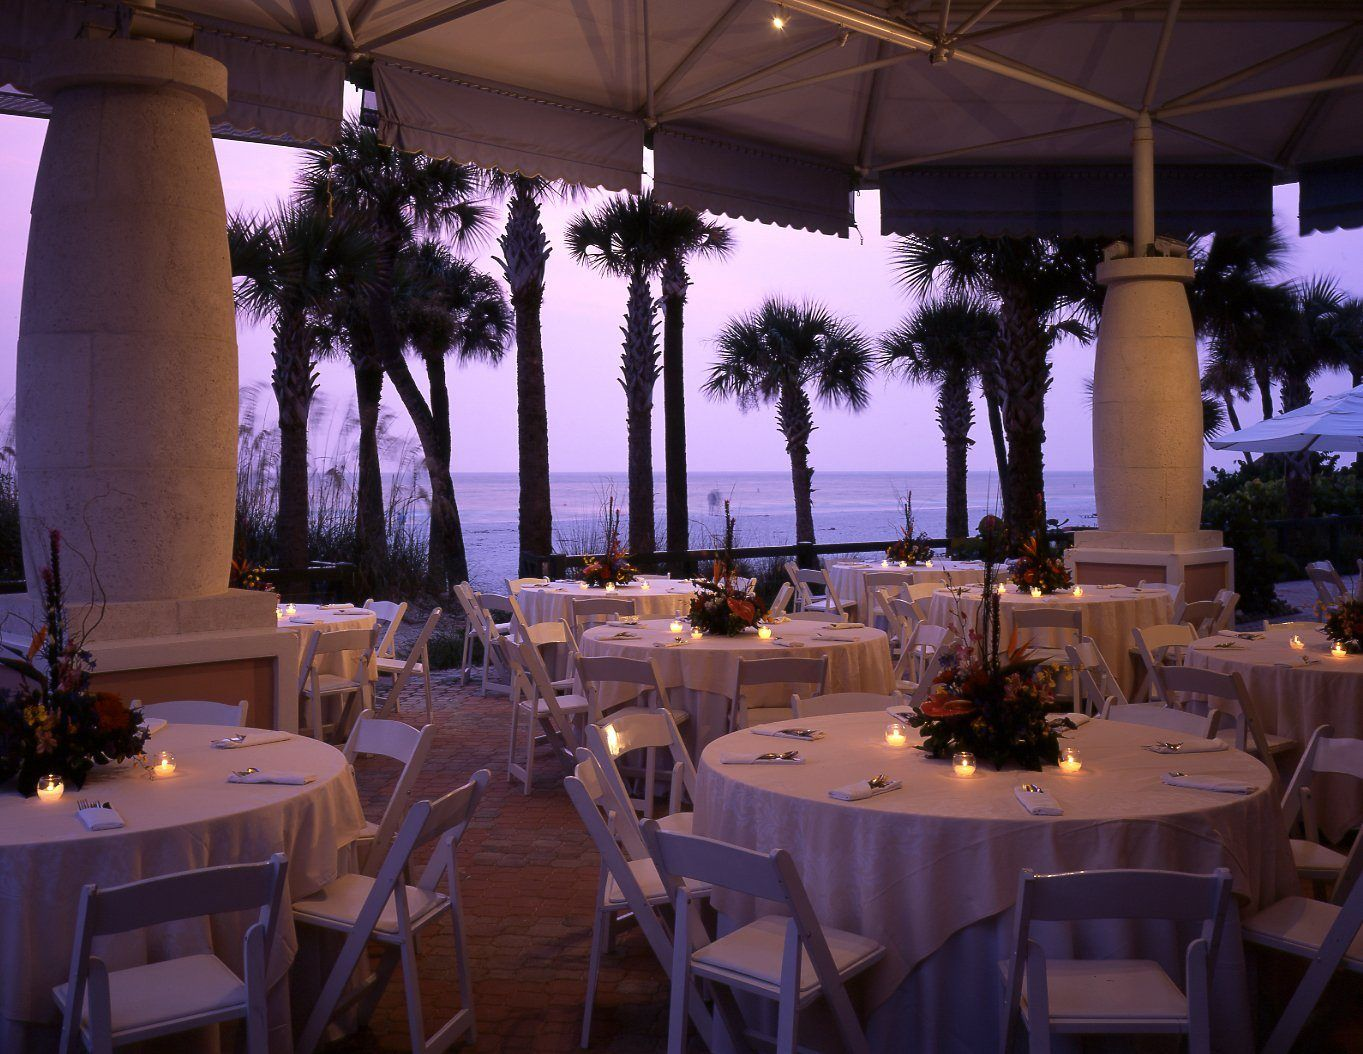 Beach Pavilion Loews Don Cesar Hotel Offers A Photo Gallery Of Our St Pete Beach Luxury Hotel Offering Superior Ameni Loews Hotel Wedding Venues Beach Venues